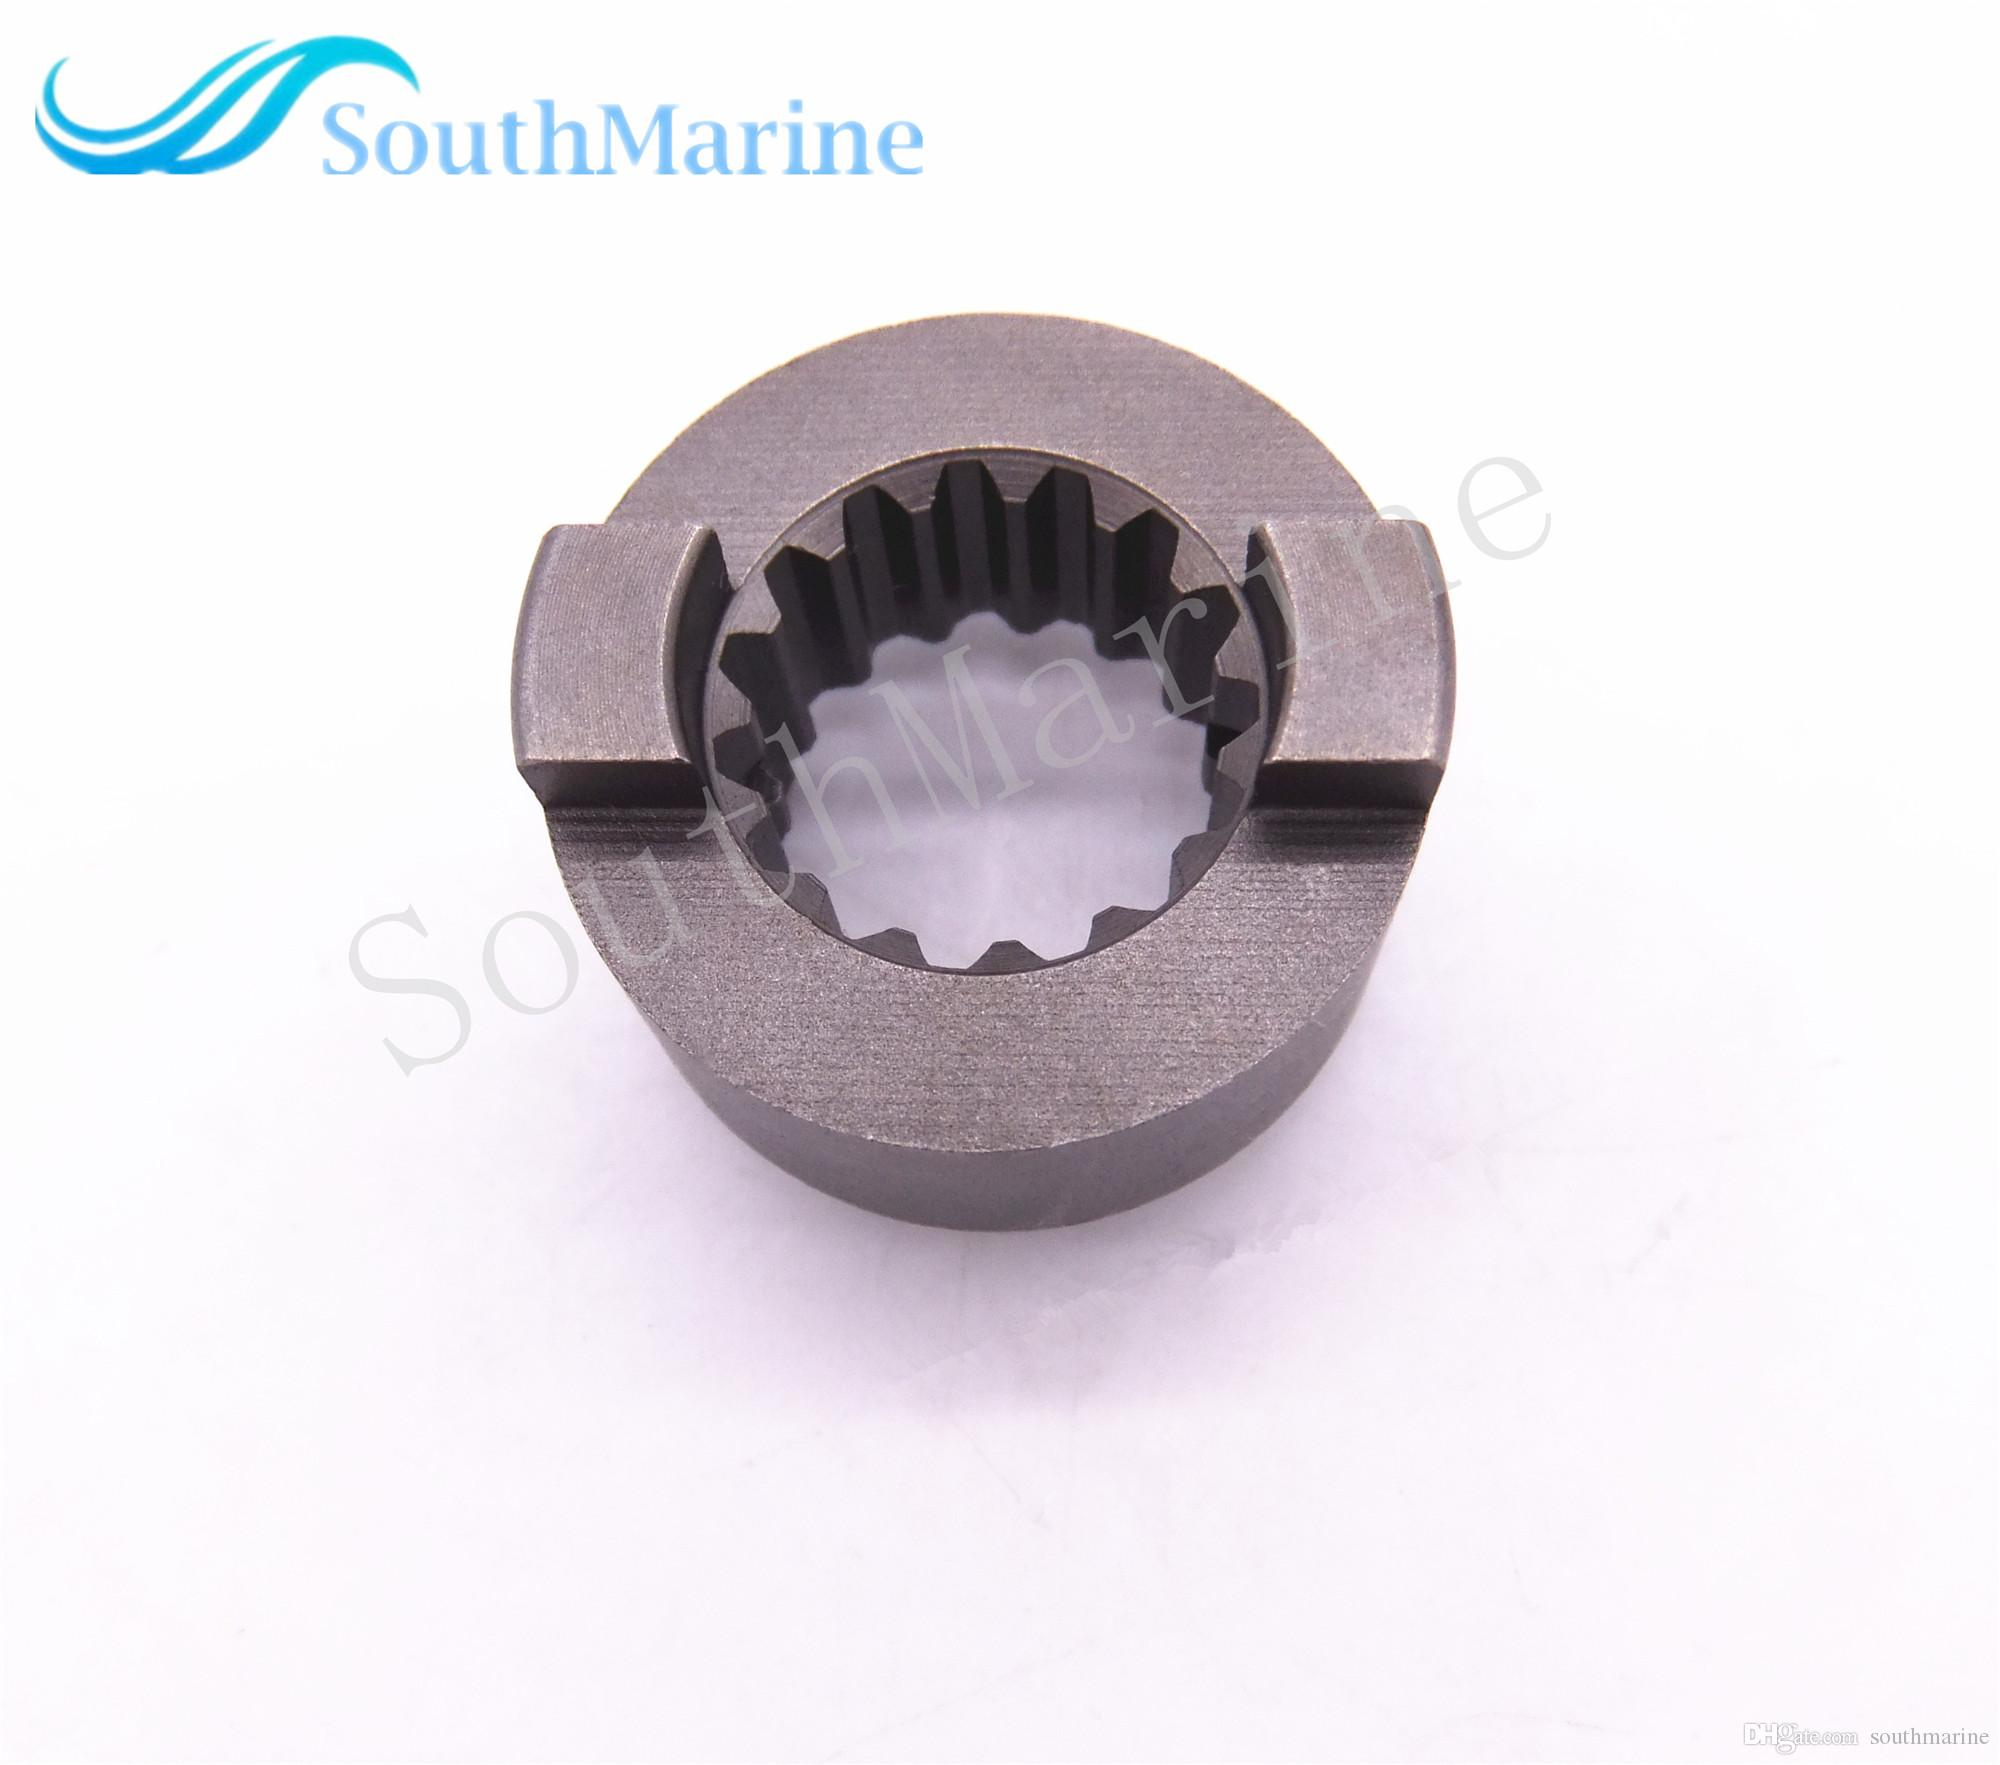 hight resolution of 2019 301 64215 1 30164 2151m clutch dog for tohatsu nissan outboard engine 2 stroke m4c m5b m5bs boat motor from southmarine 22 02 dhgate com